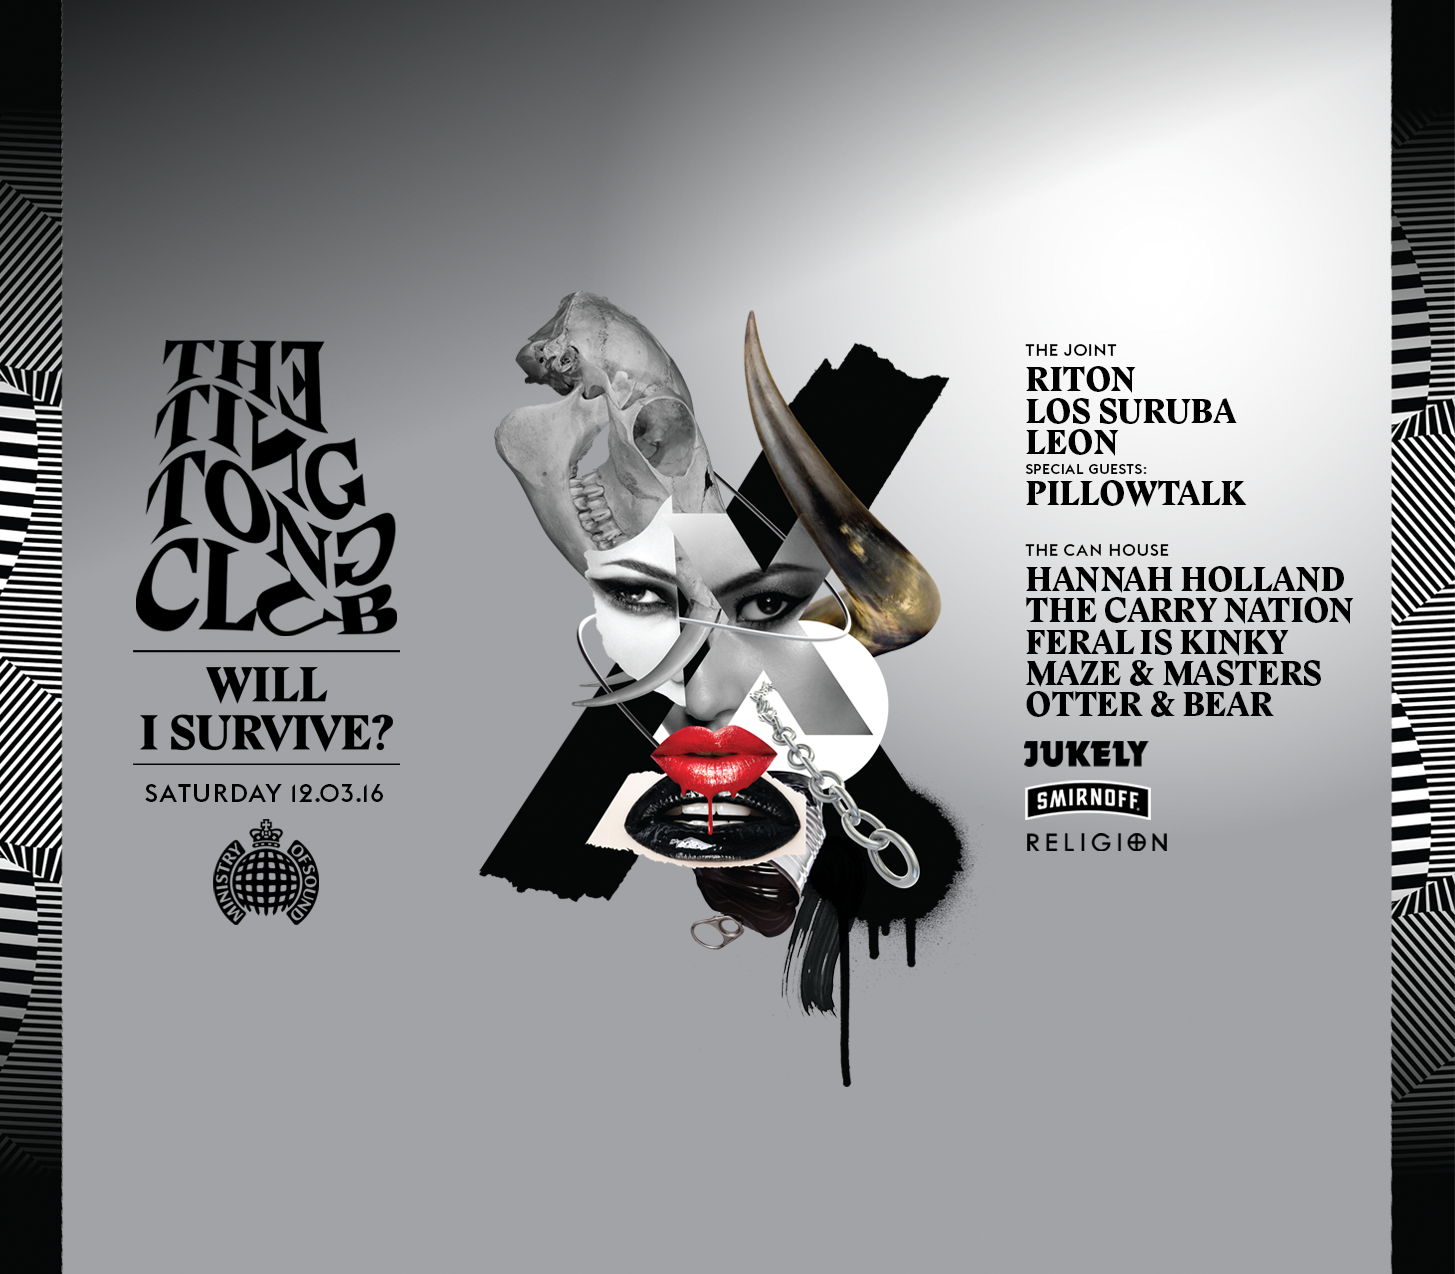 The Ting Tong Club * Jukely presents